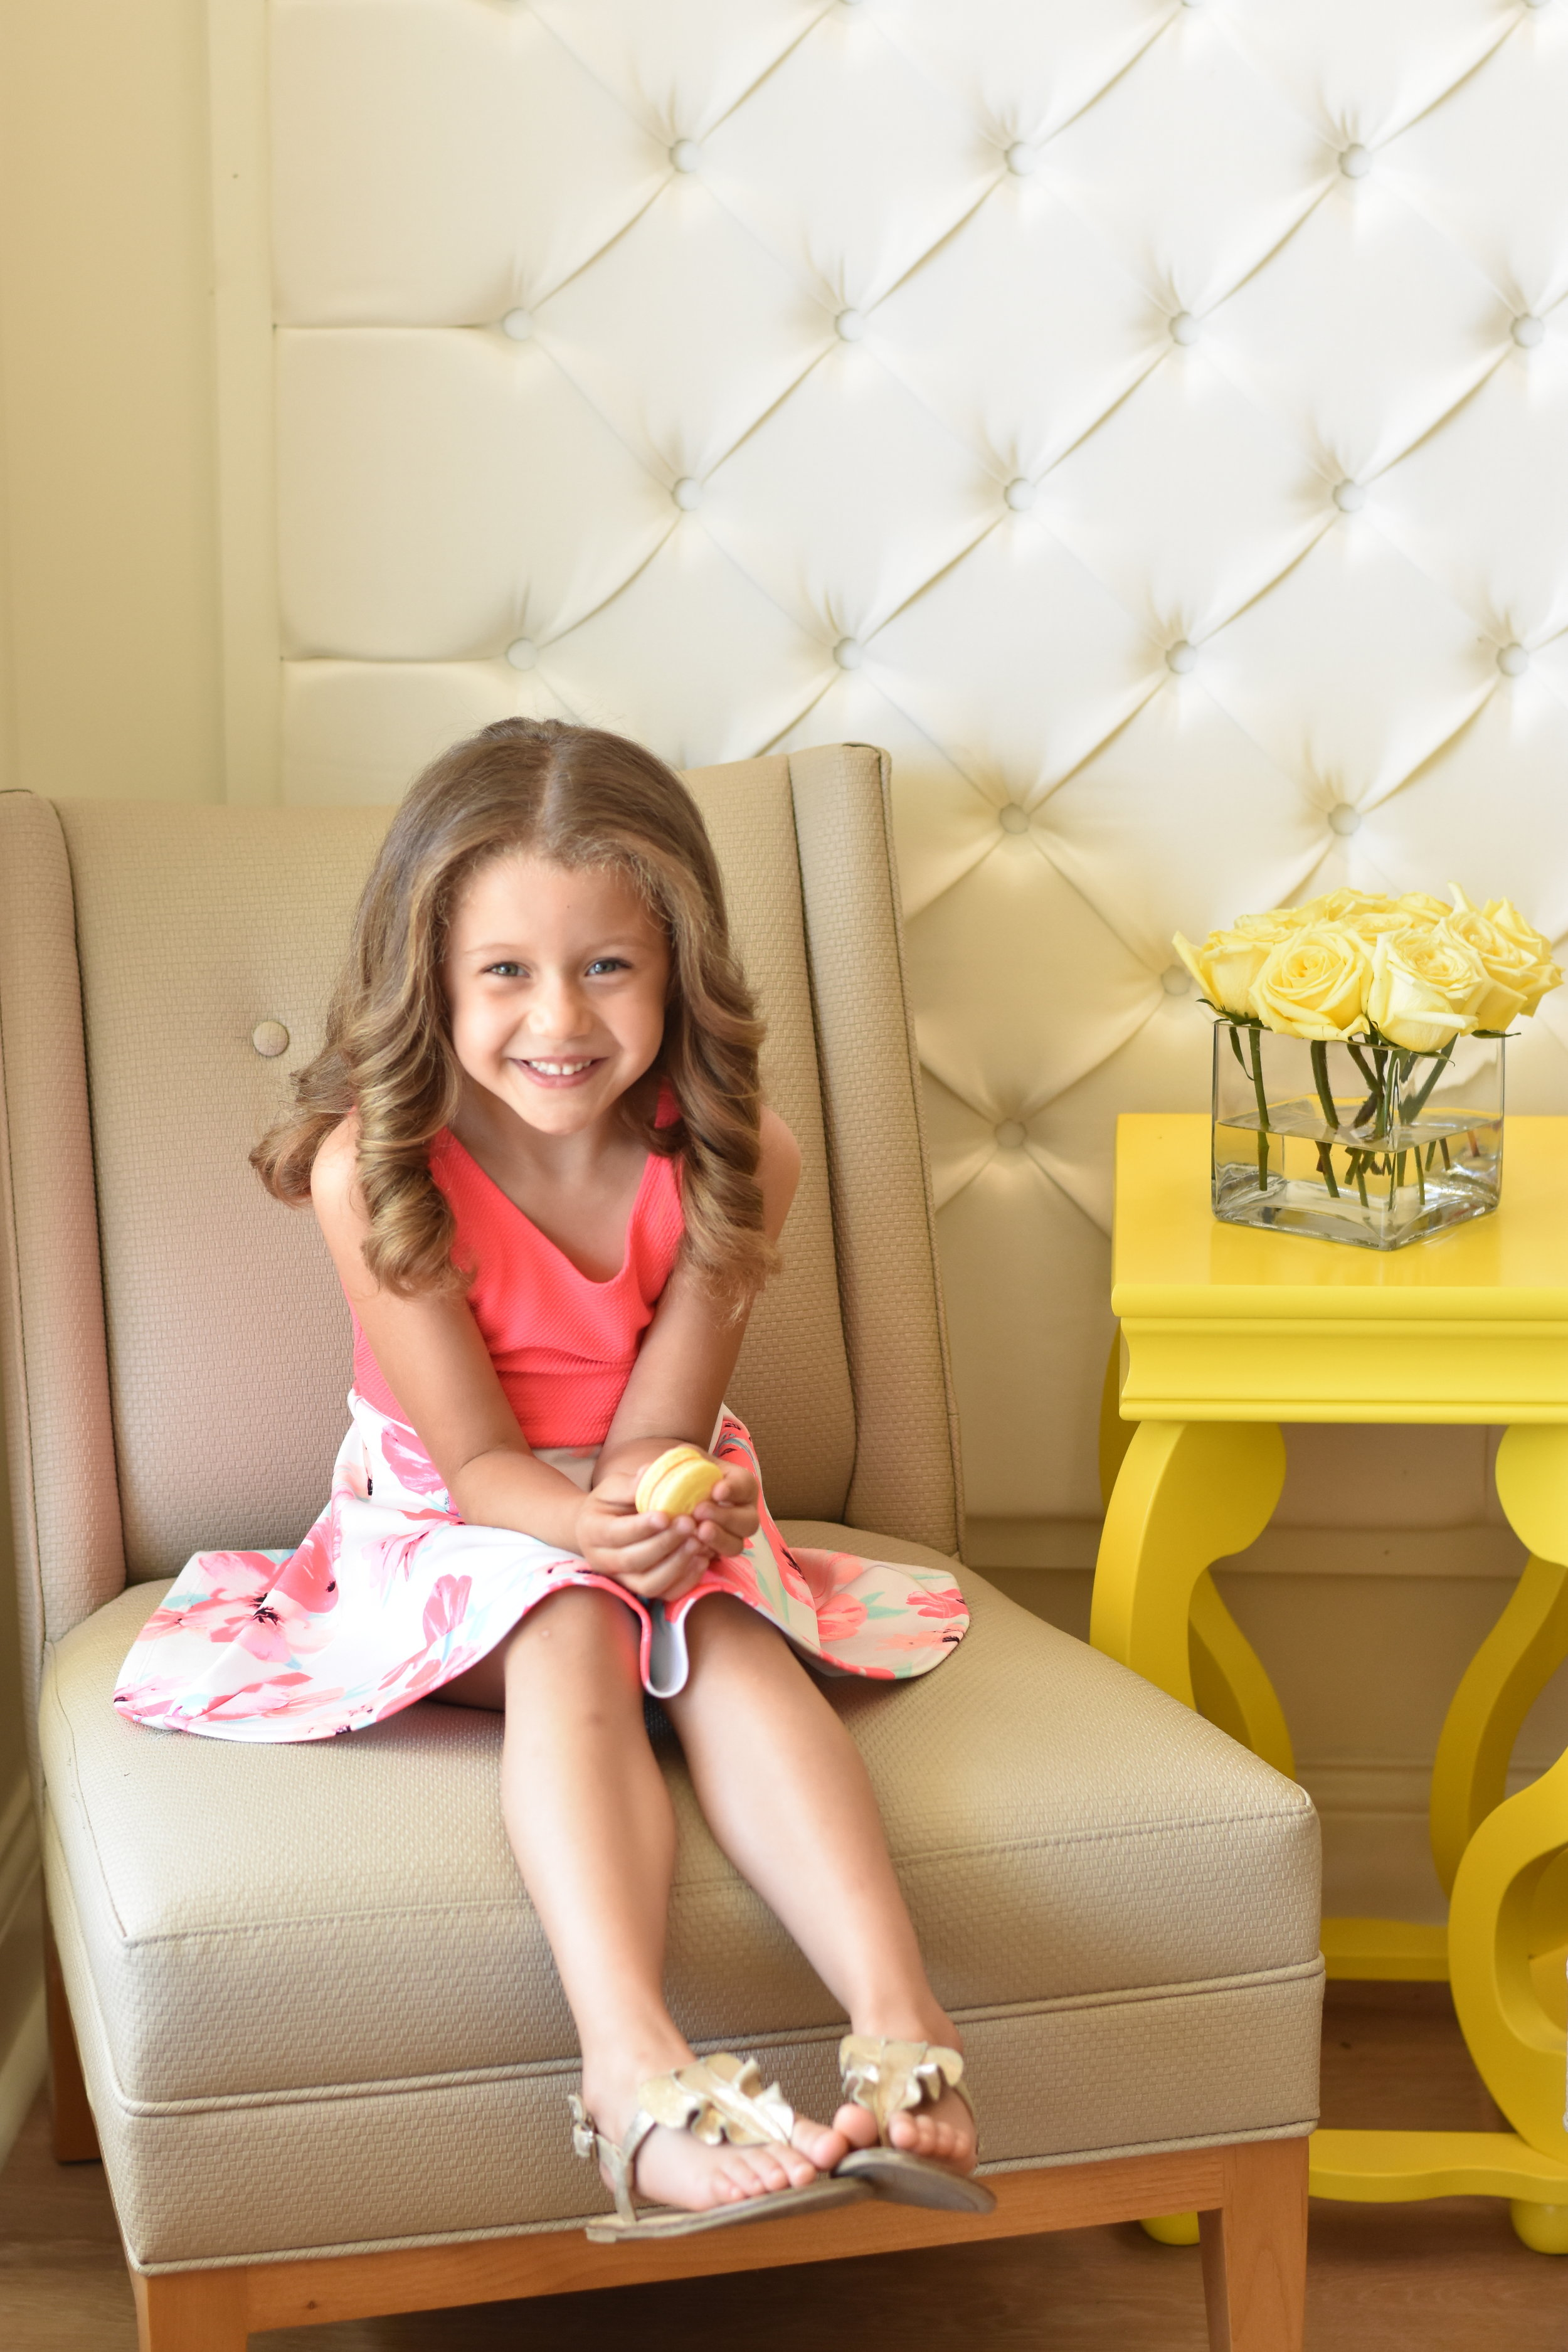 Image of little girl sitting in a chair at DryBar salon after a blowout hairstyle.